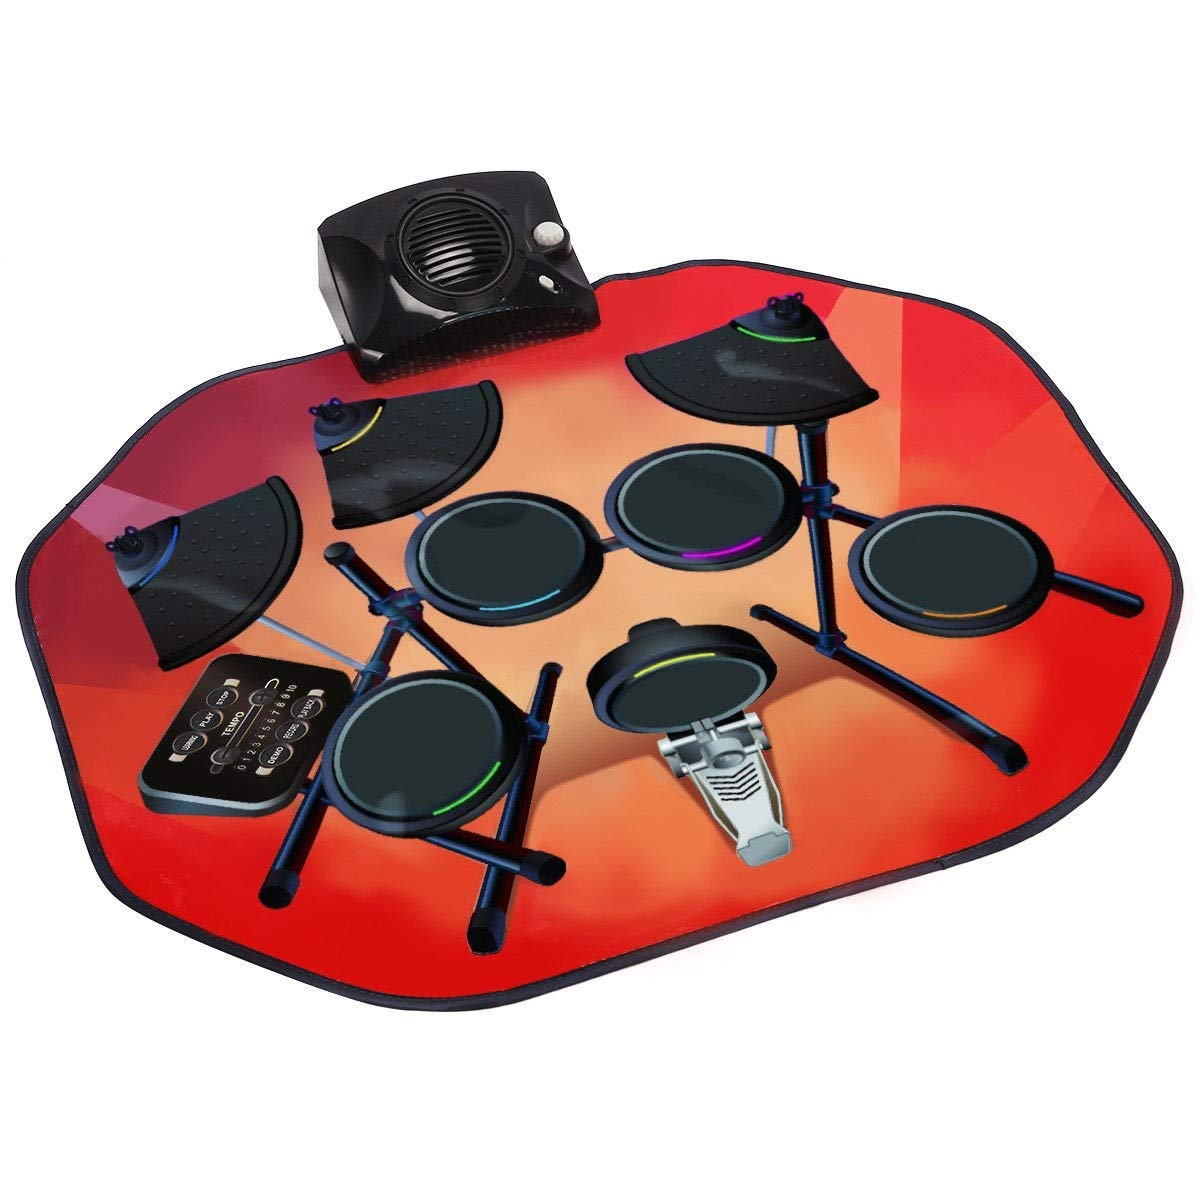 USA_BEST_SELLER Electronic Glowing Play Drum Mats Kit Set with MP3 Cable Great Holiday Birthday Gift for Kids by USA_BEST_SELLER (Image #3)